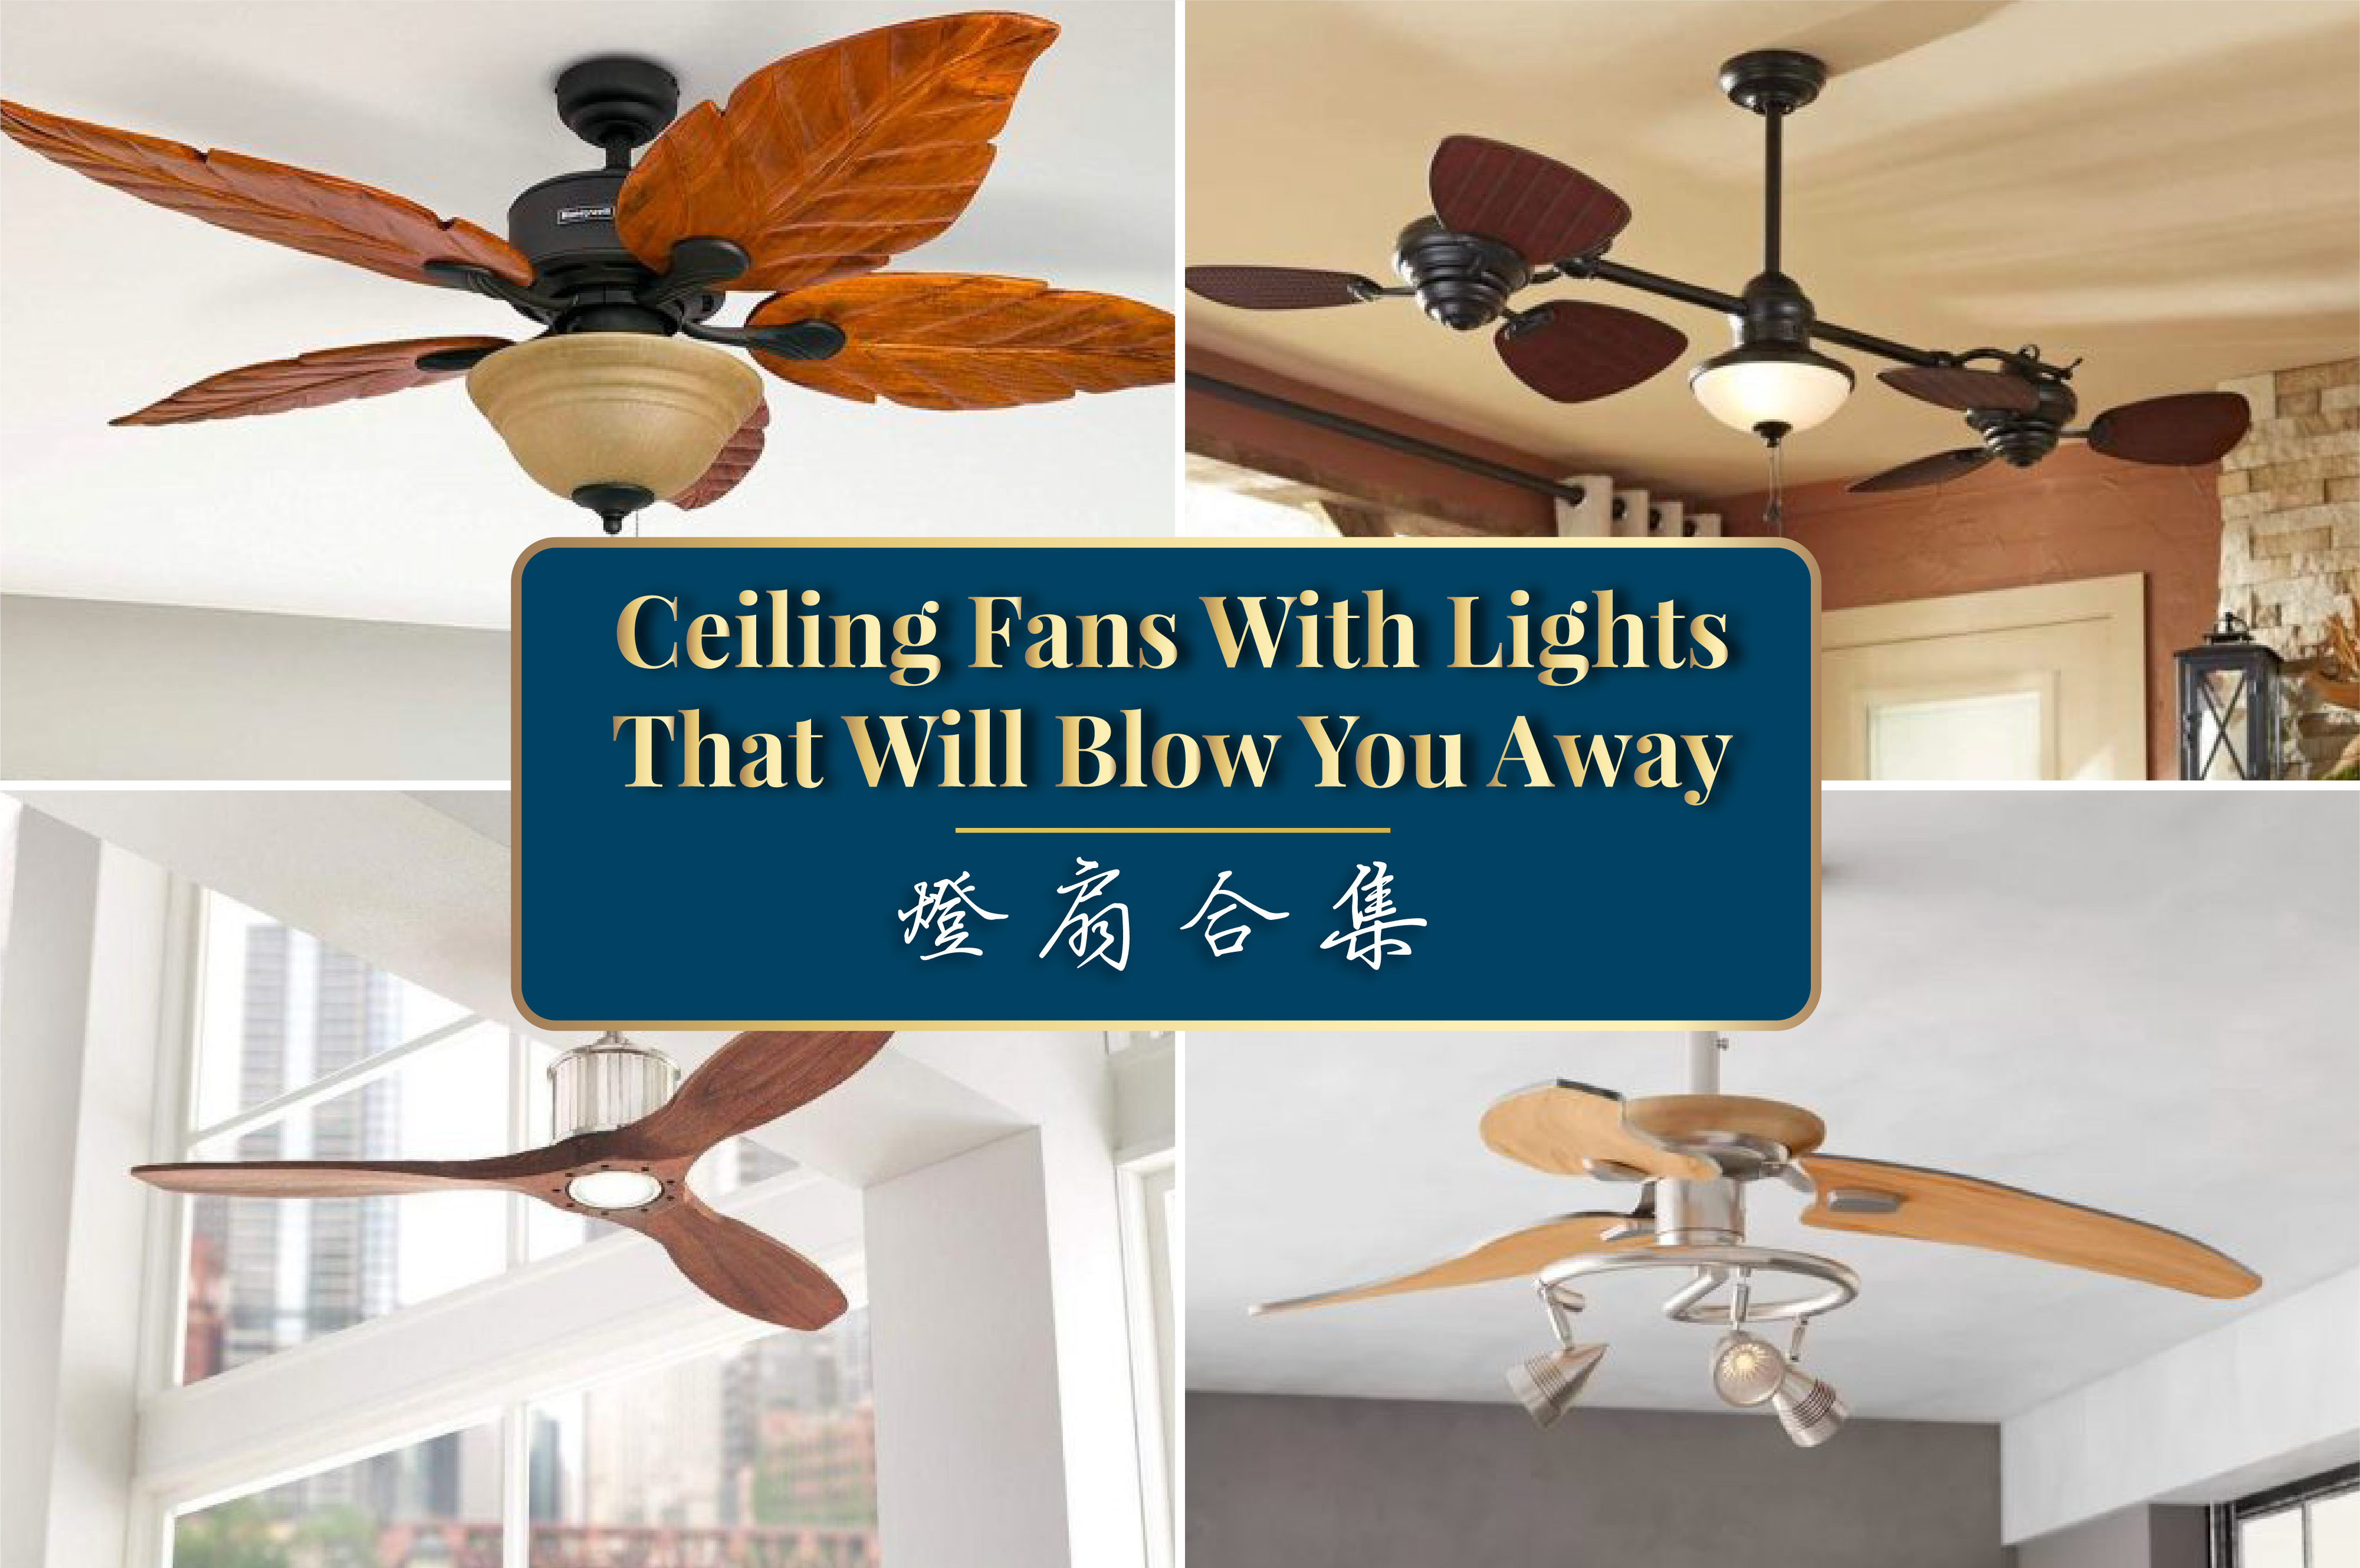 Ceiling Fans With Lights That Will Blow You Away 灯扇合集